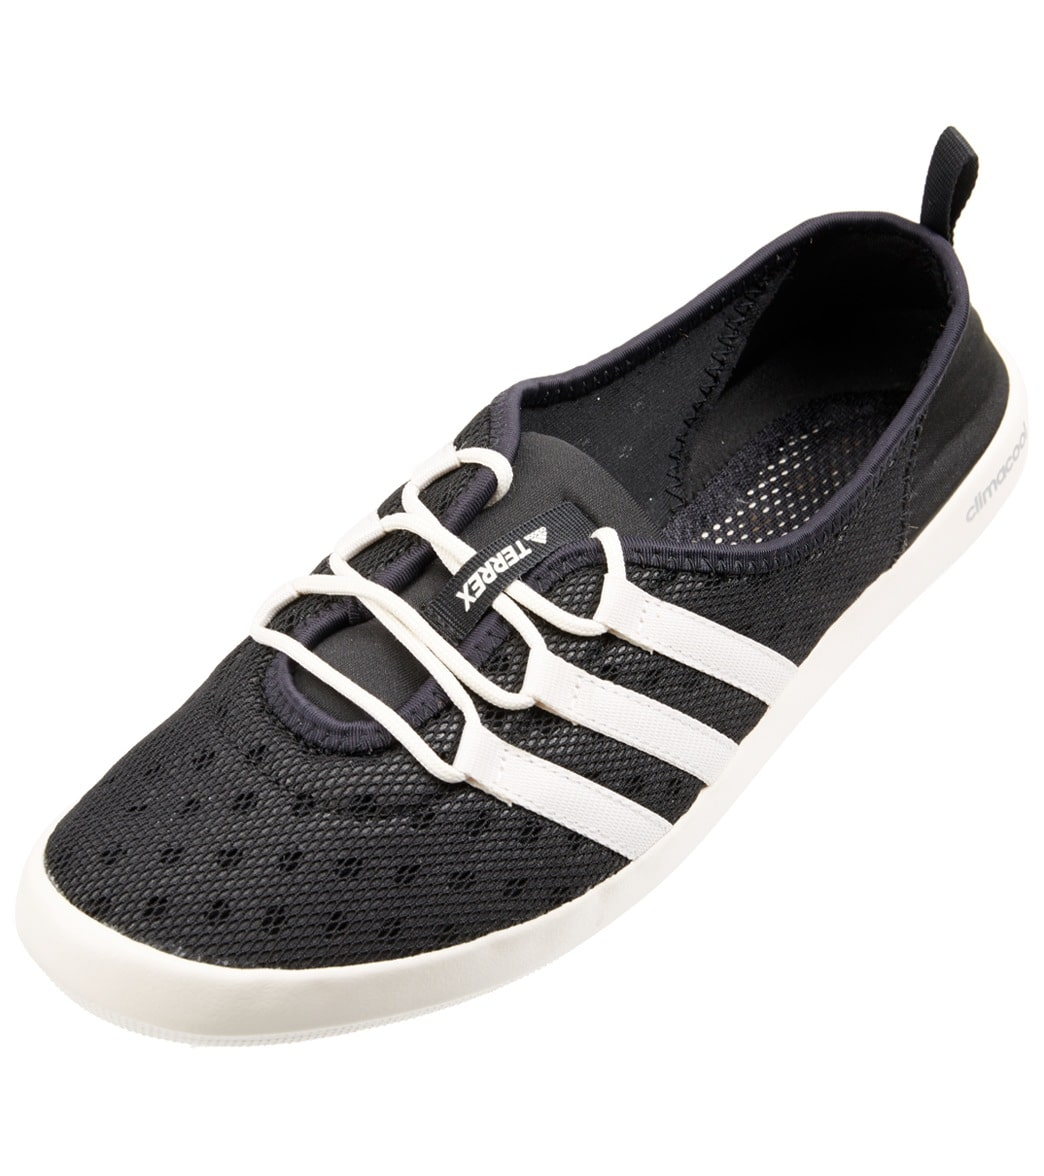 2fb806fa4920 Adidas Women s Climacool Boat Sleek Water Shoes at SwimOutlet.com - Free  Shipping